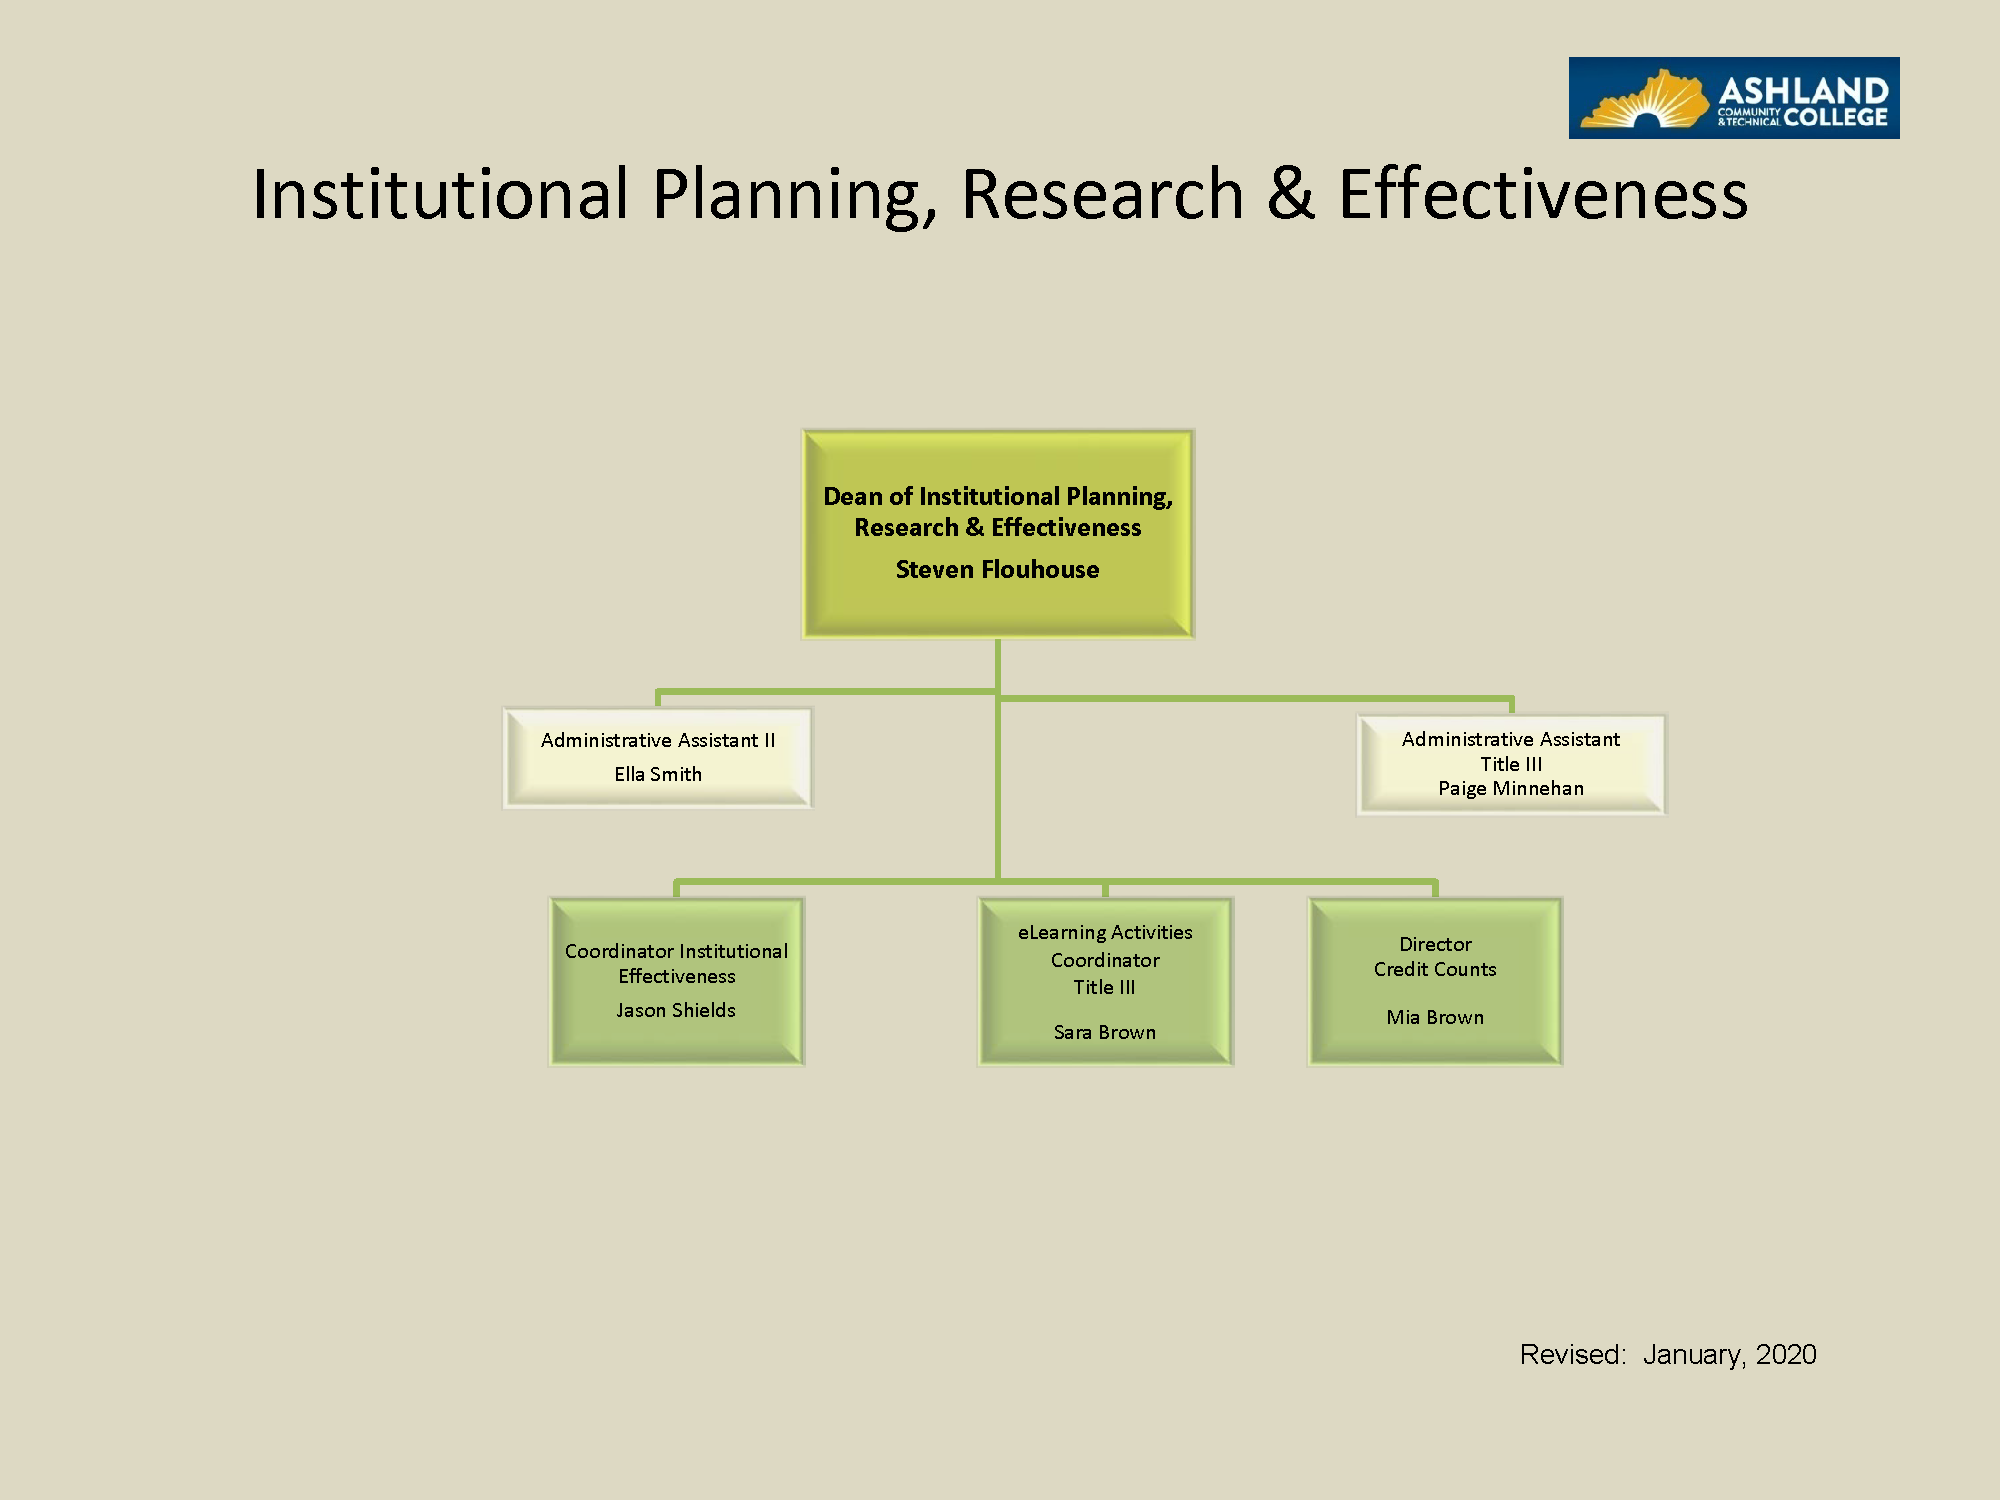 Institutional Planning, Research & Effectiveness is led by the Dean of Institutional Planning, Research & Effectiveness Steven Flouhouse. Directly reporting to the Dean of Institutional Planning, Research & Effectiveness are Administrative Assistant Ella Smith, Coordinator of Institutional Effectiveness Jason Shields, and Title III. Revised August 2017